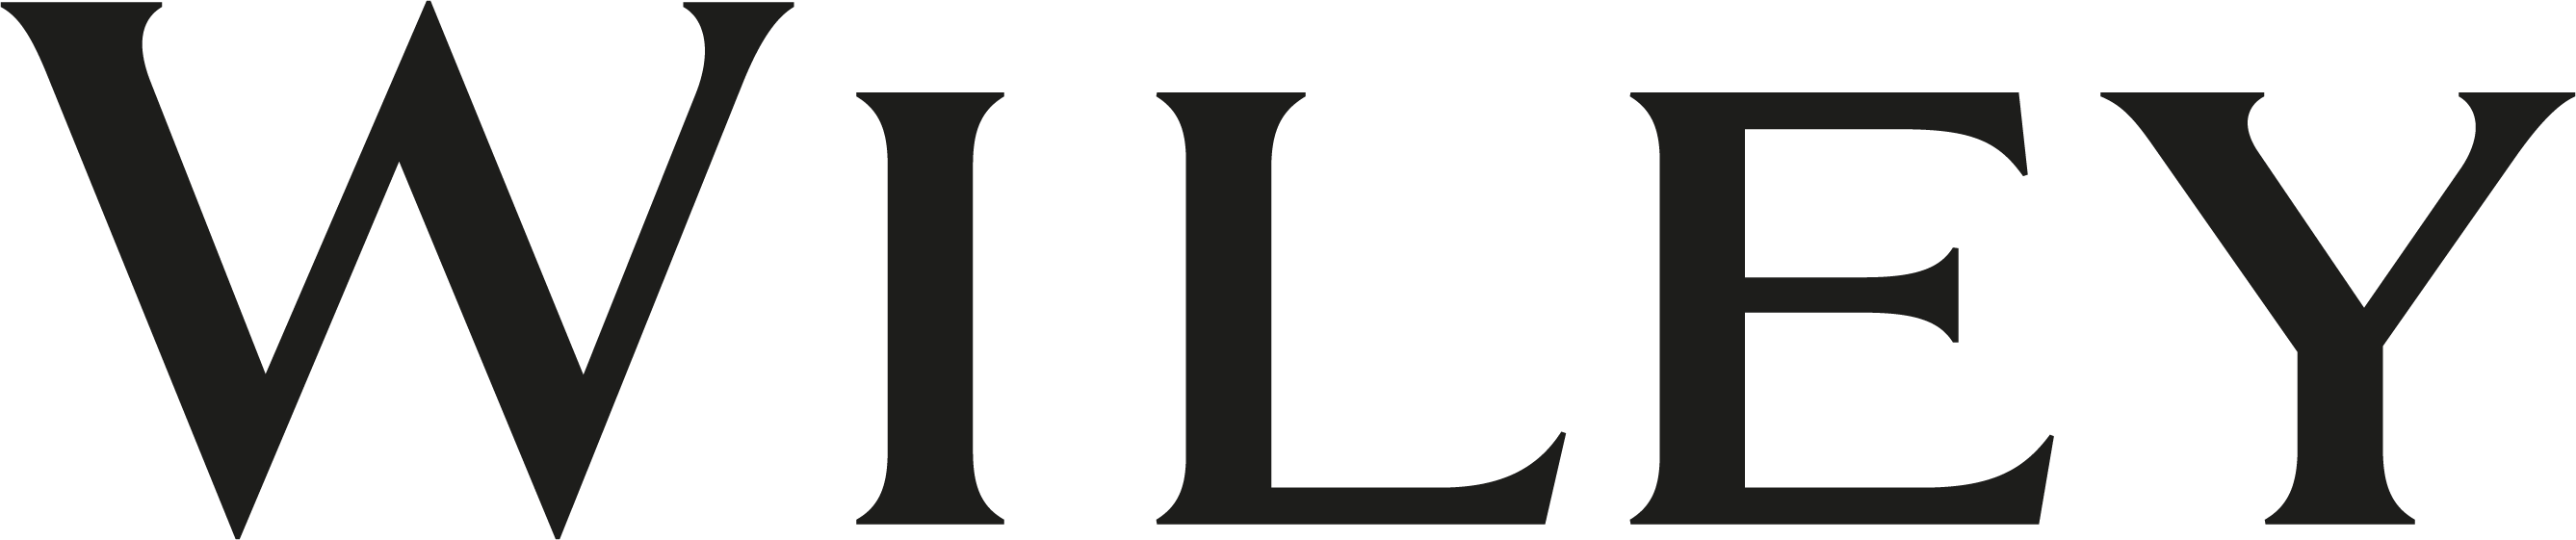 Wiley Logo png